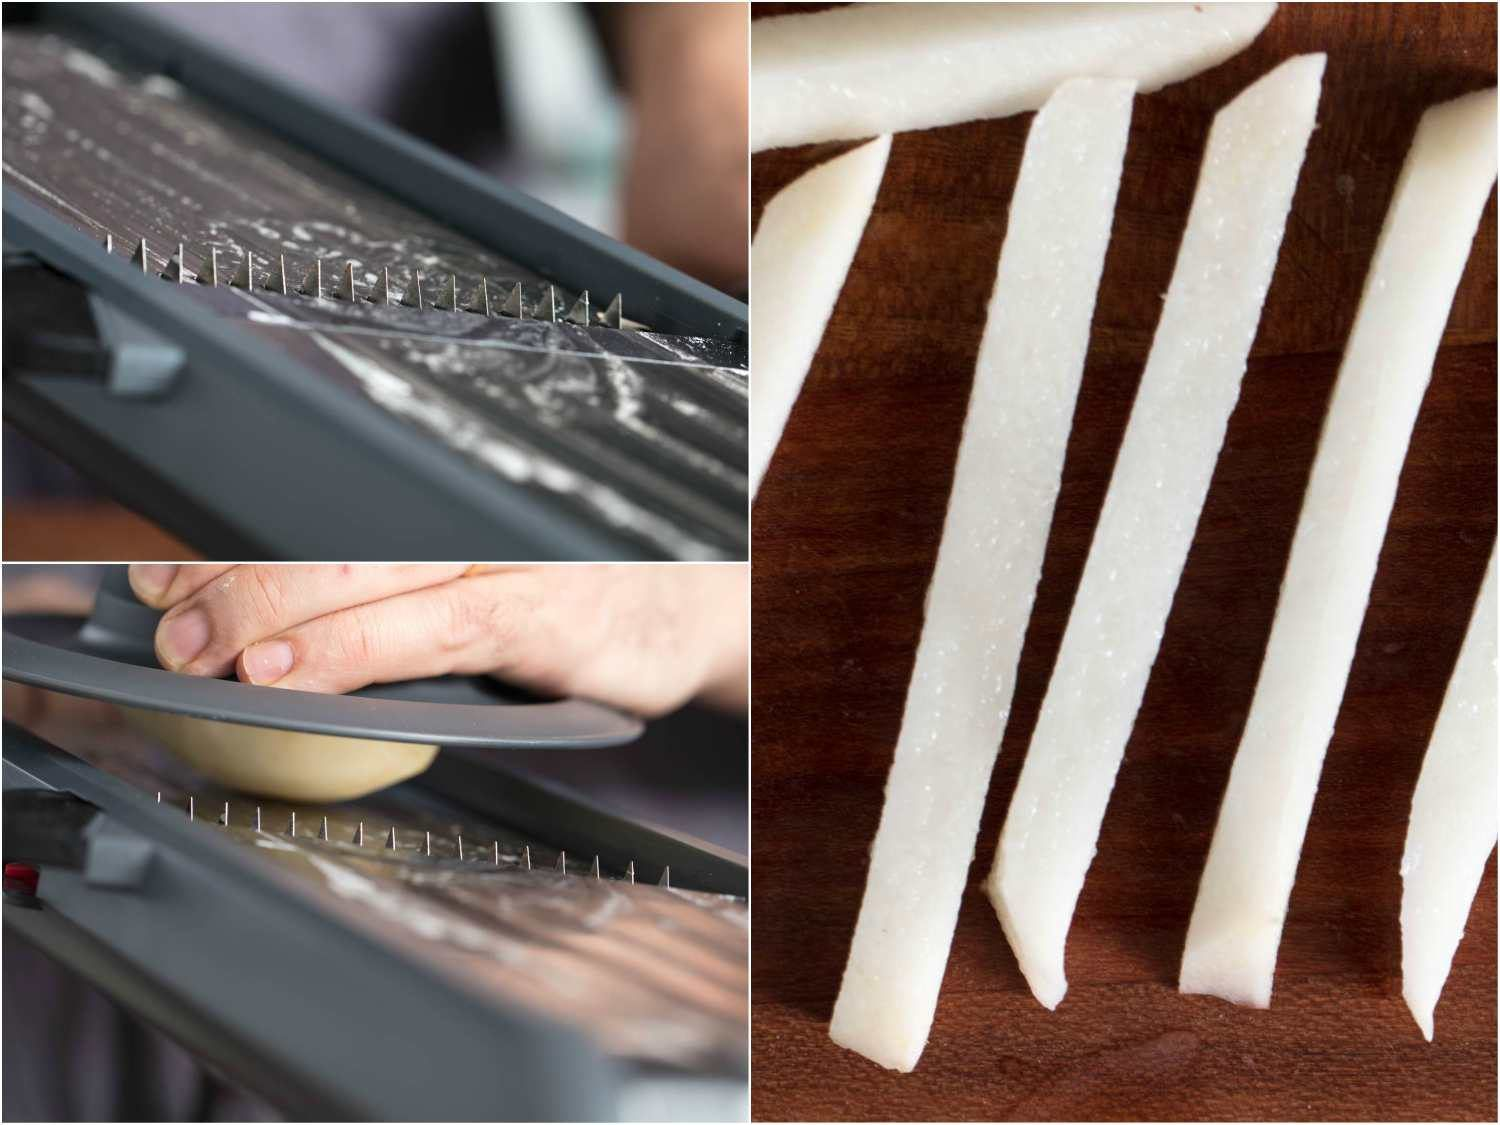 Process photos of cutting potato sticks for French fries using a fully equipped slicer: cutting even sticks on slicer using cross-cutting teeth, finished sticks